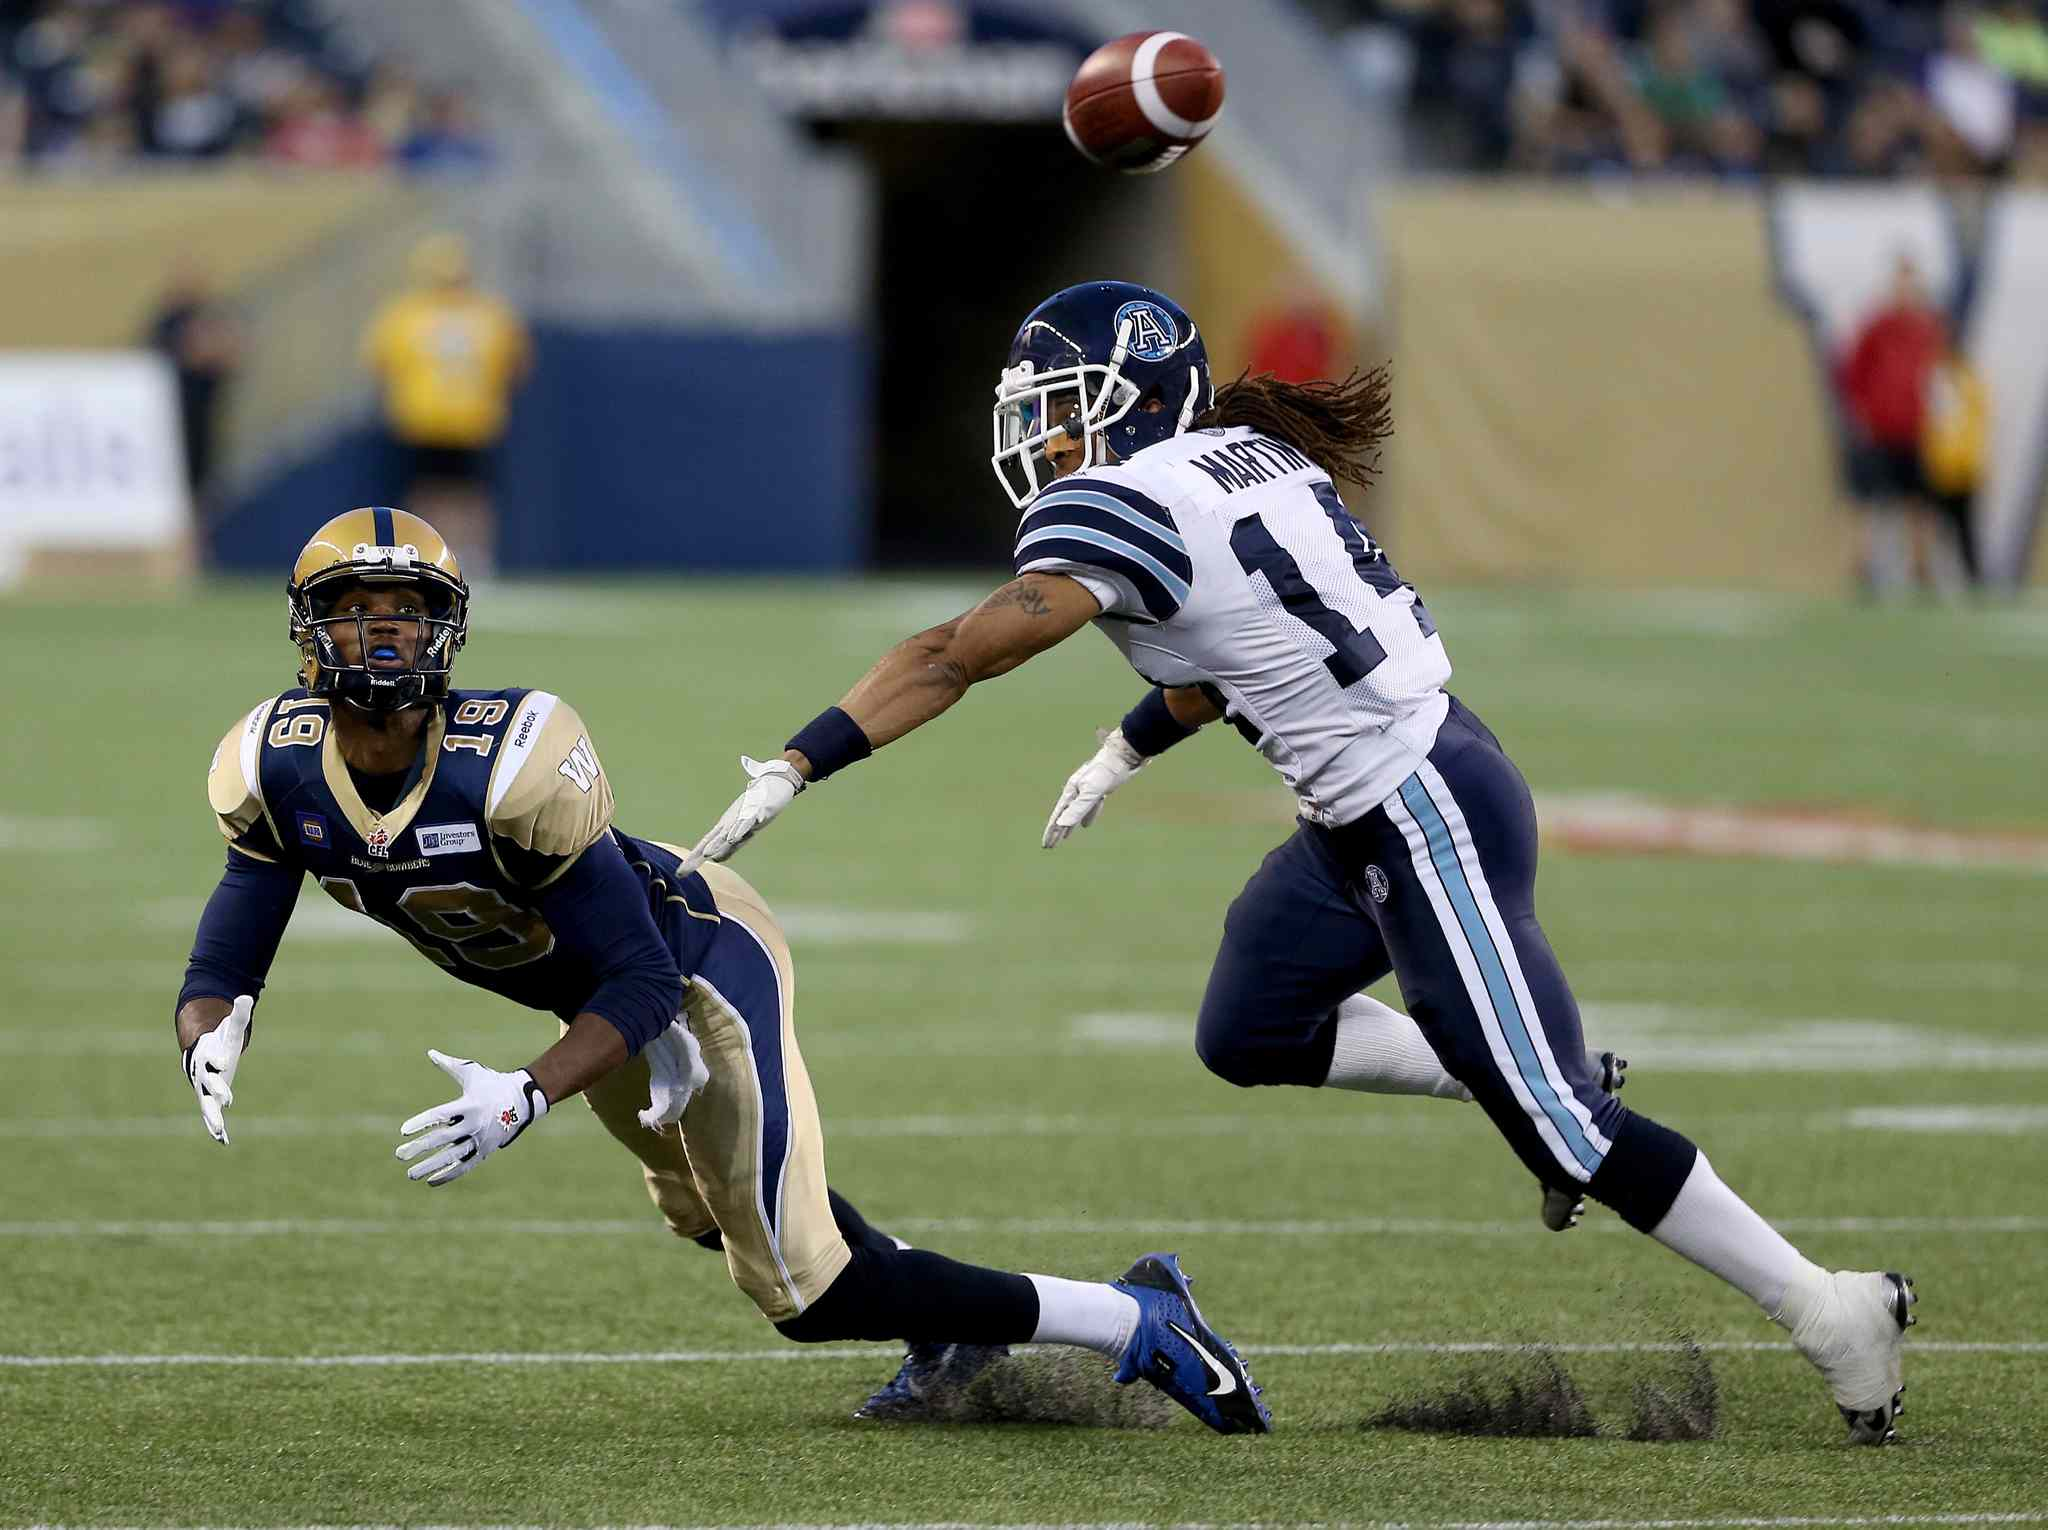 Bombers receiver Aaron Kelly dives for a pass behind Toronto's Andre Martin during the second half.